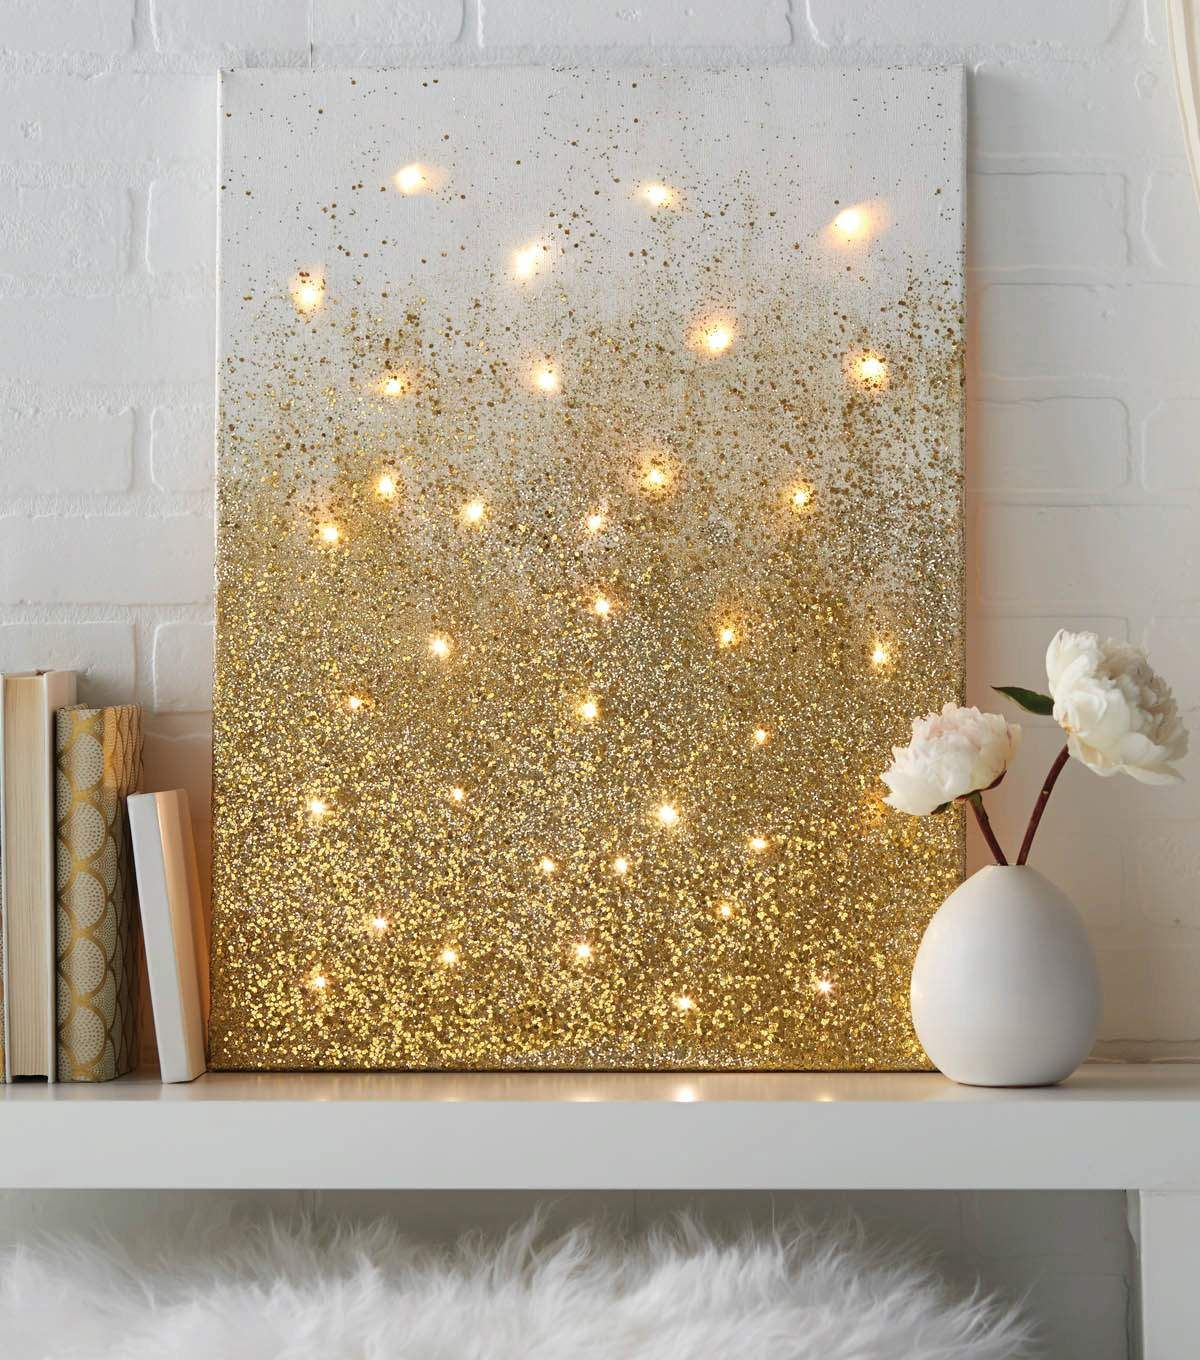 Glitter and lights canvas projects pinterest canvases lights glitter and lights canvas aloadofball Choice Image